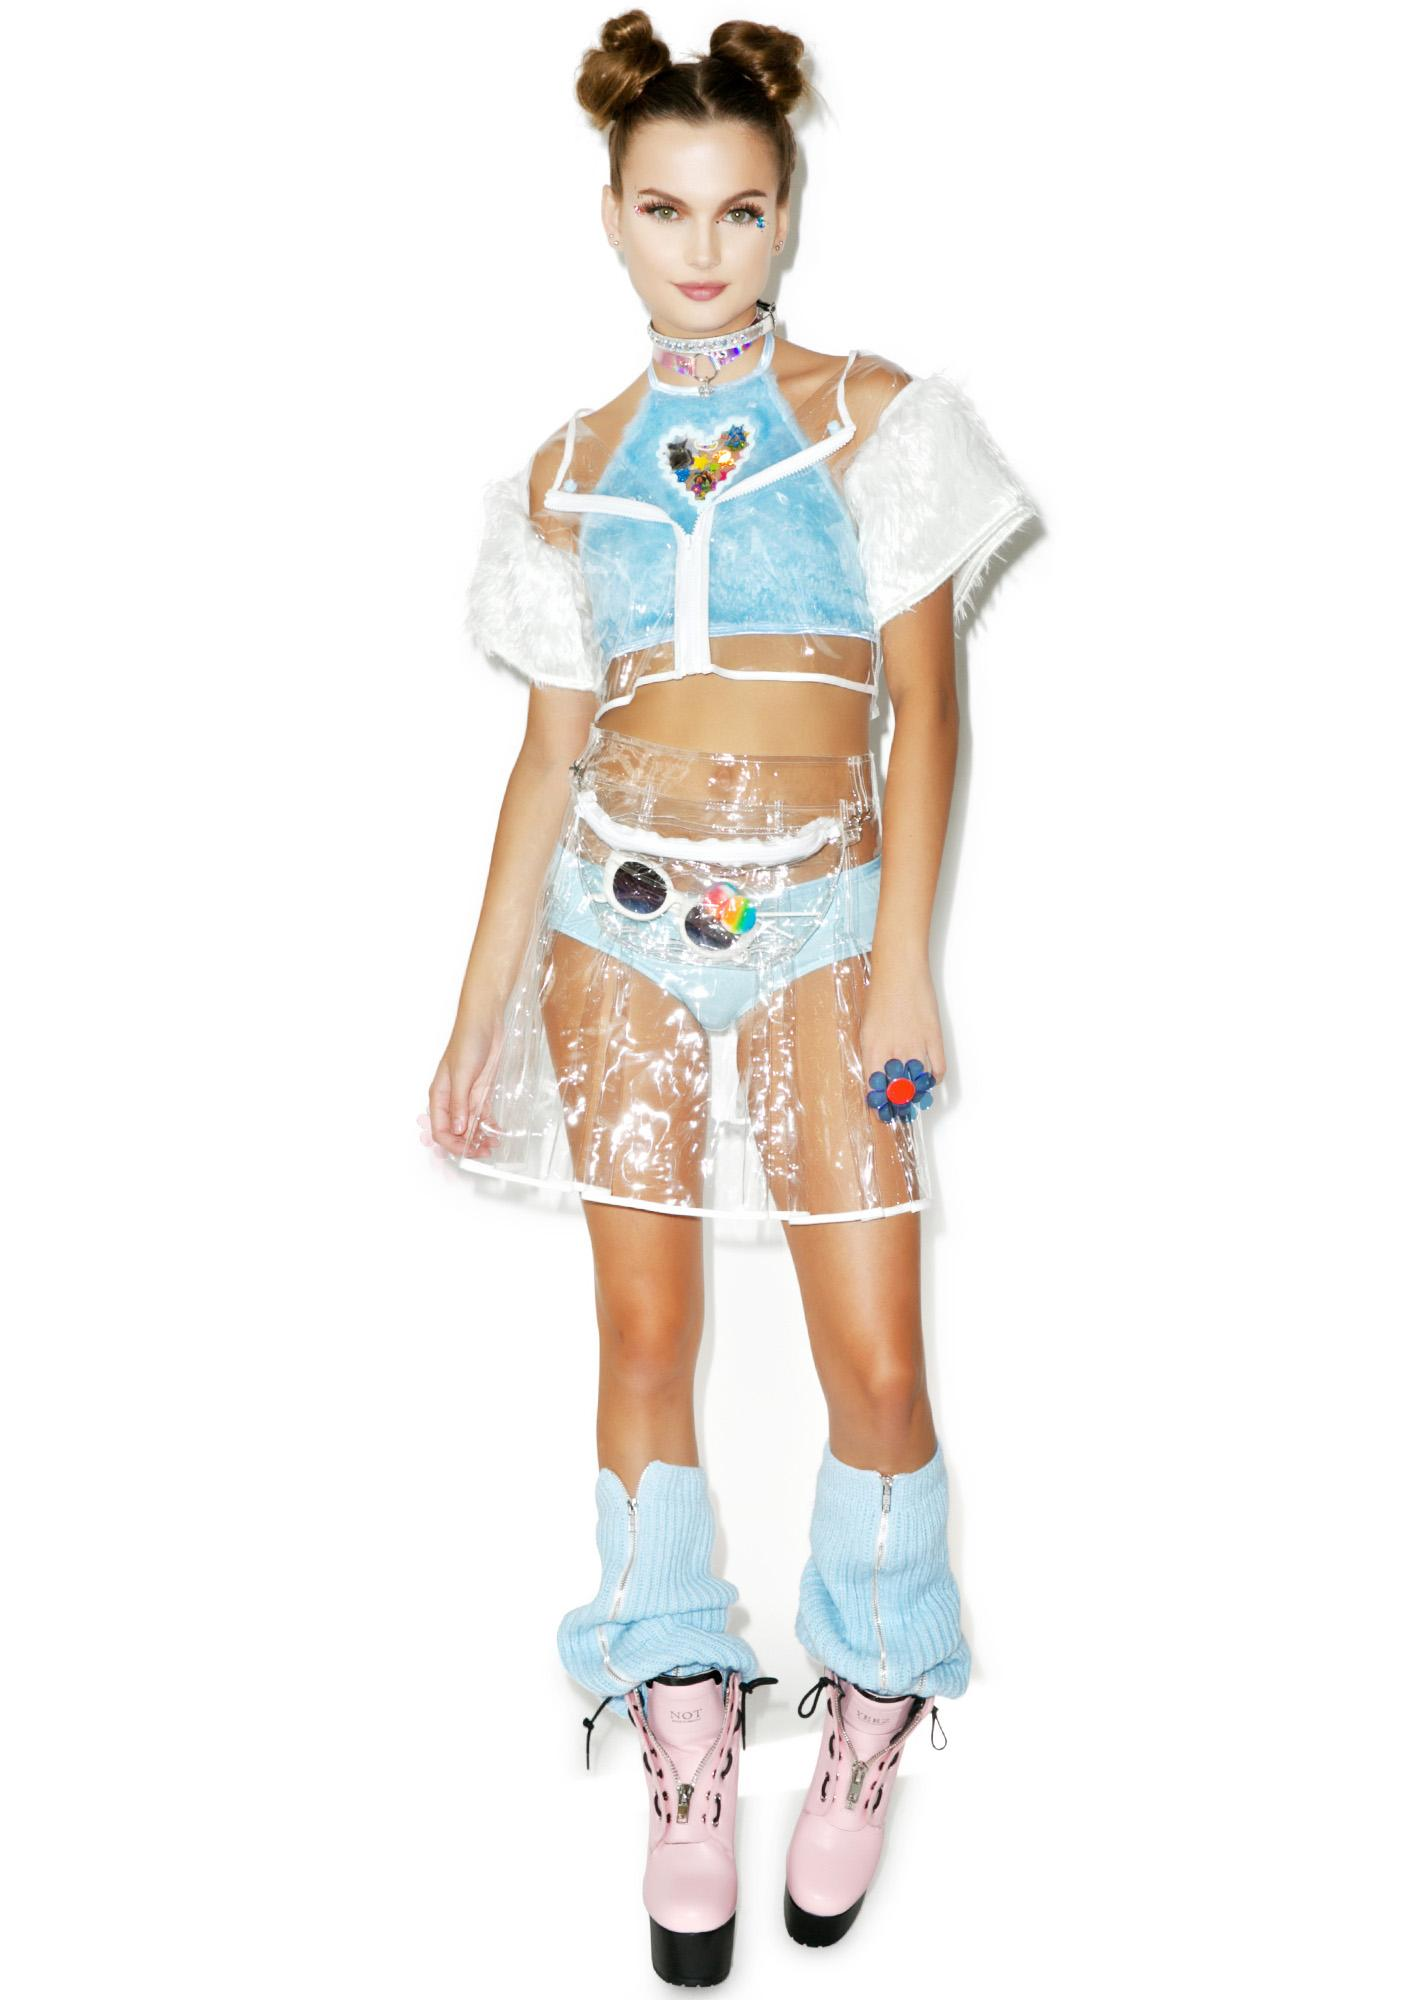 Indyanna Scary Spice PVC Crop Top